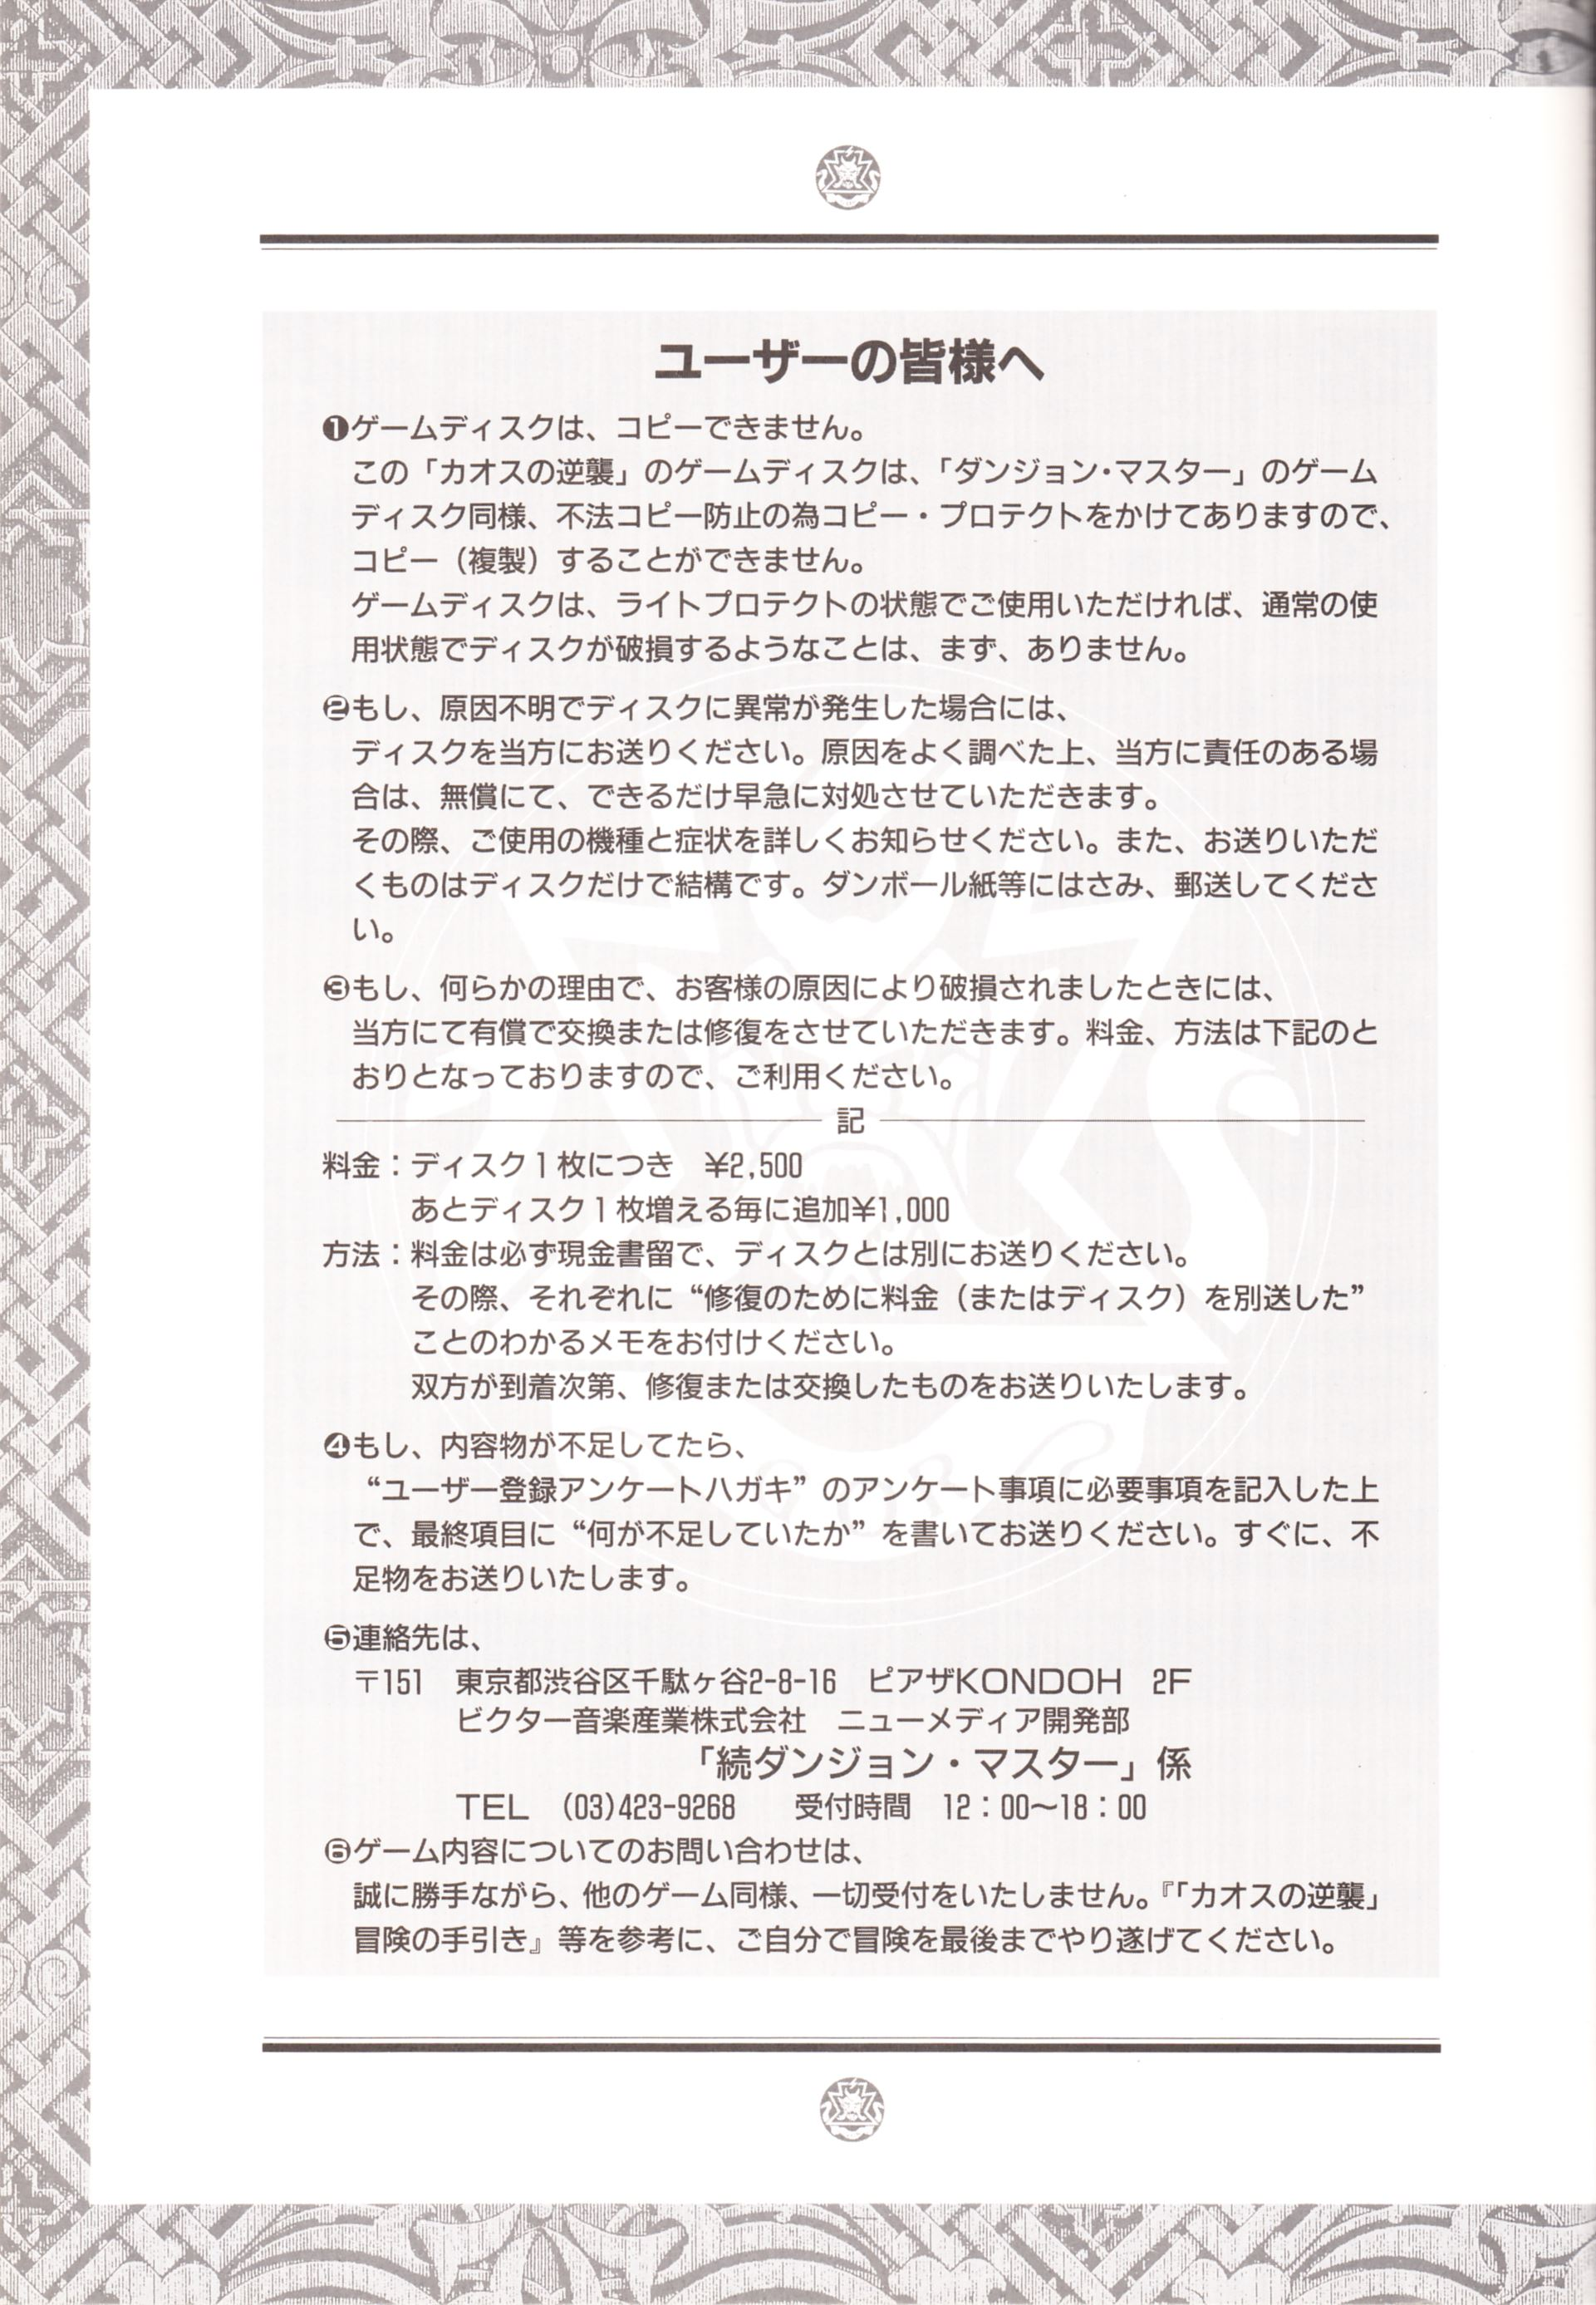 Game - Chaos Strikes Back - JP - PC-9801 - 3-5-inch - An Operation Manual - Page 026 - Scan